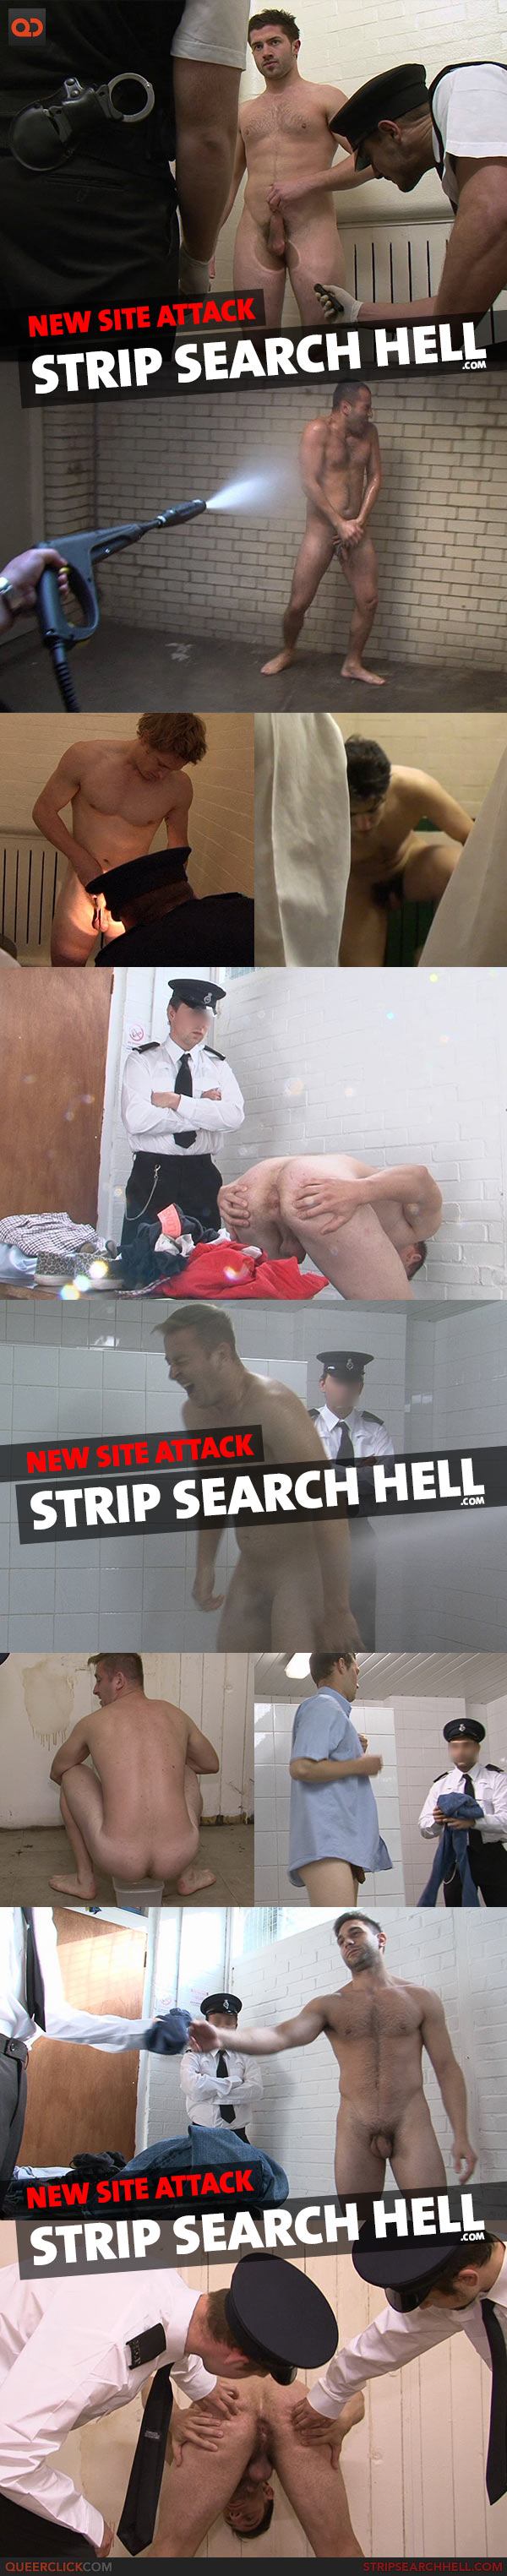 New Site Attack: Strip Search Hell